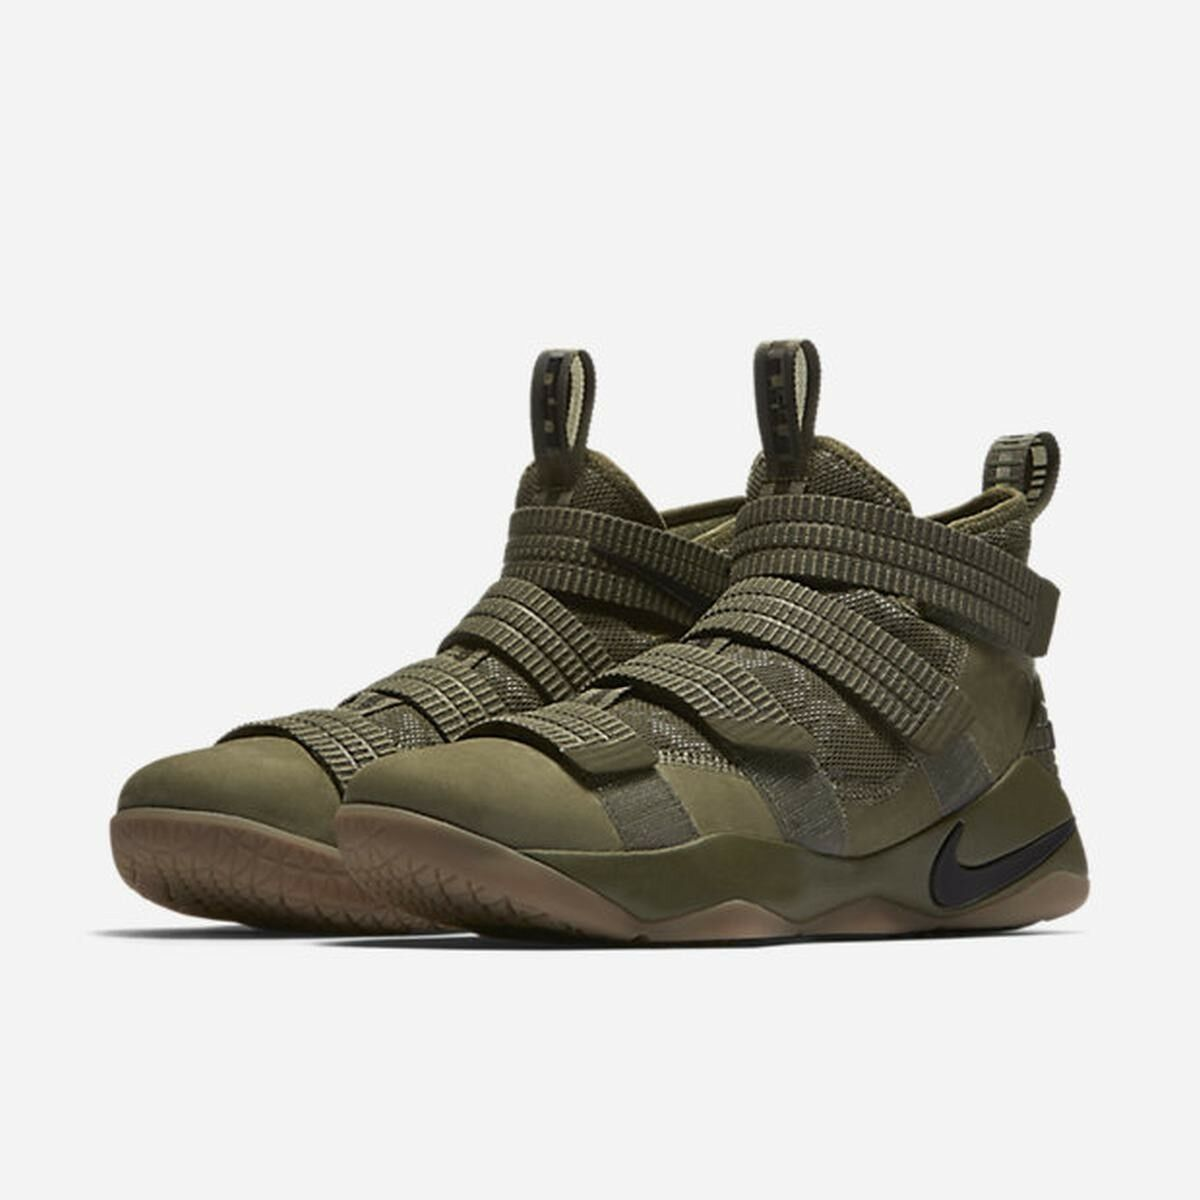 Lebron Soldier XI SFG MediumOlive/Black-Black Price reduction US) Cheap and beautiful fashion